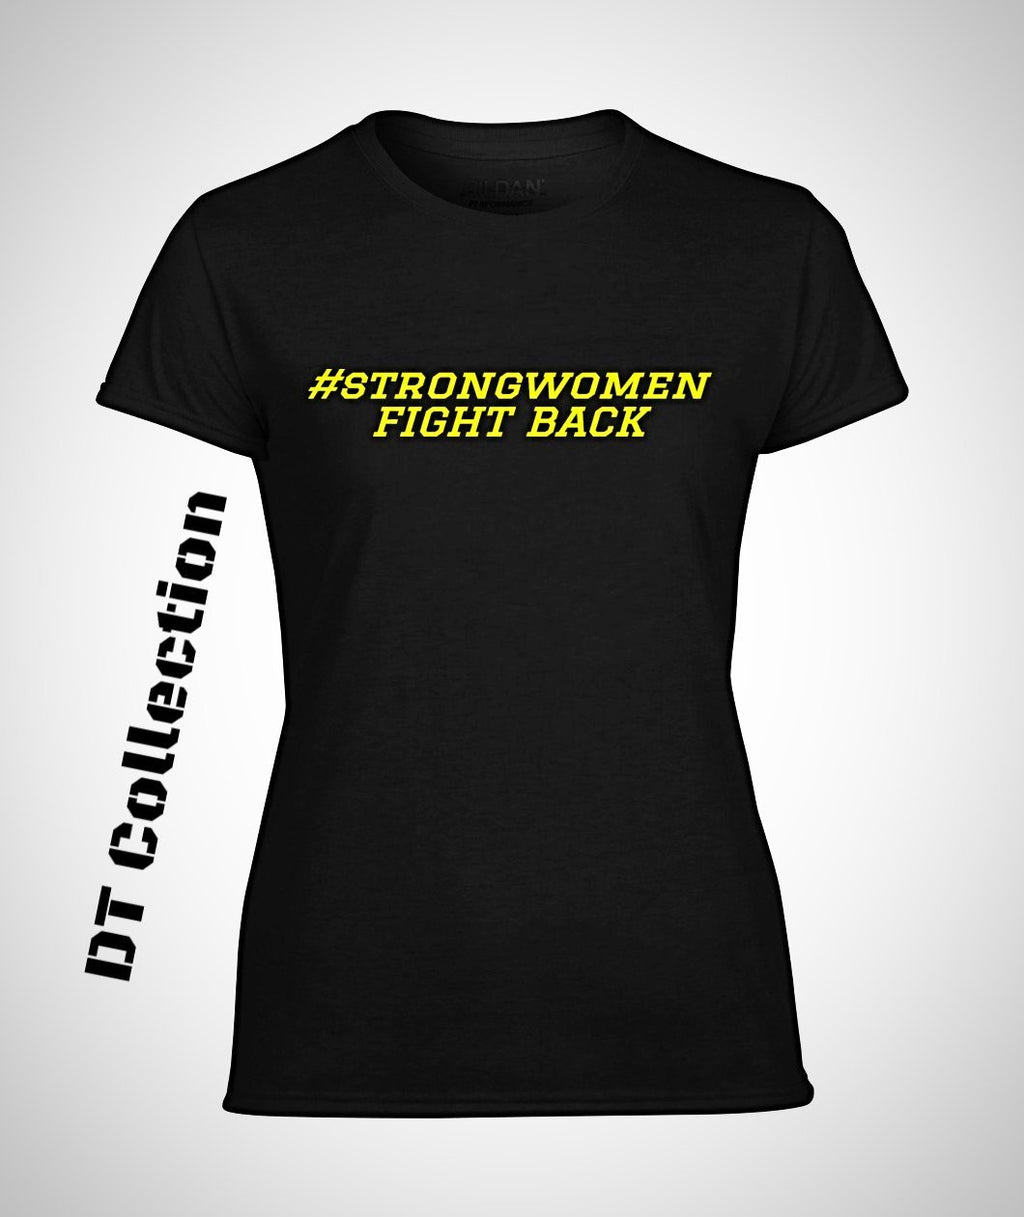 #strongwomen FIGHT BACK T-Shirt MBM Women's Performance Tee